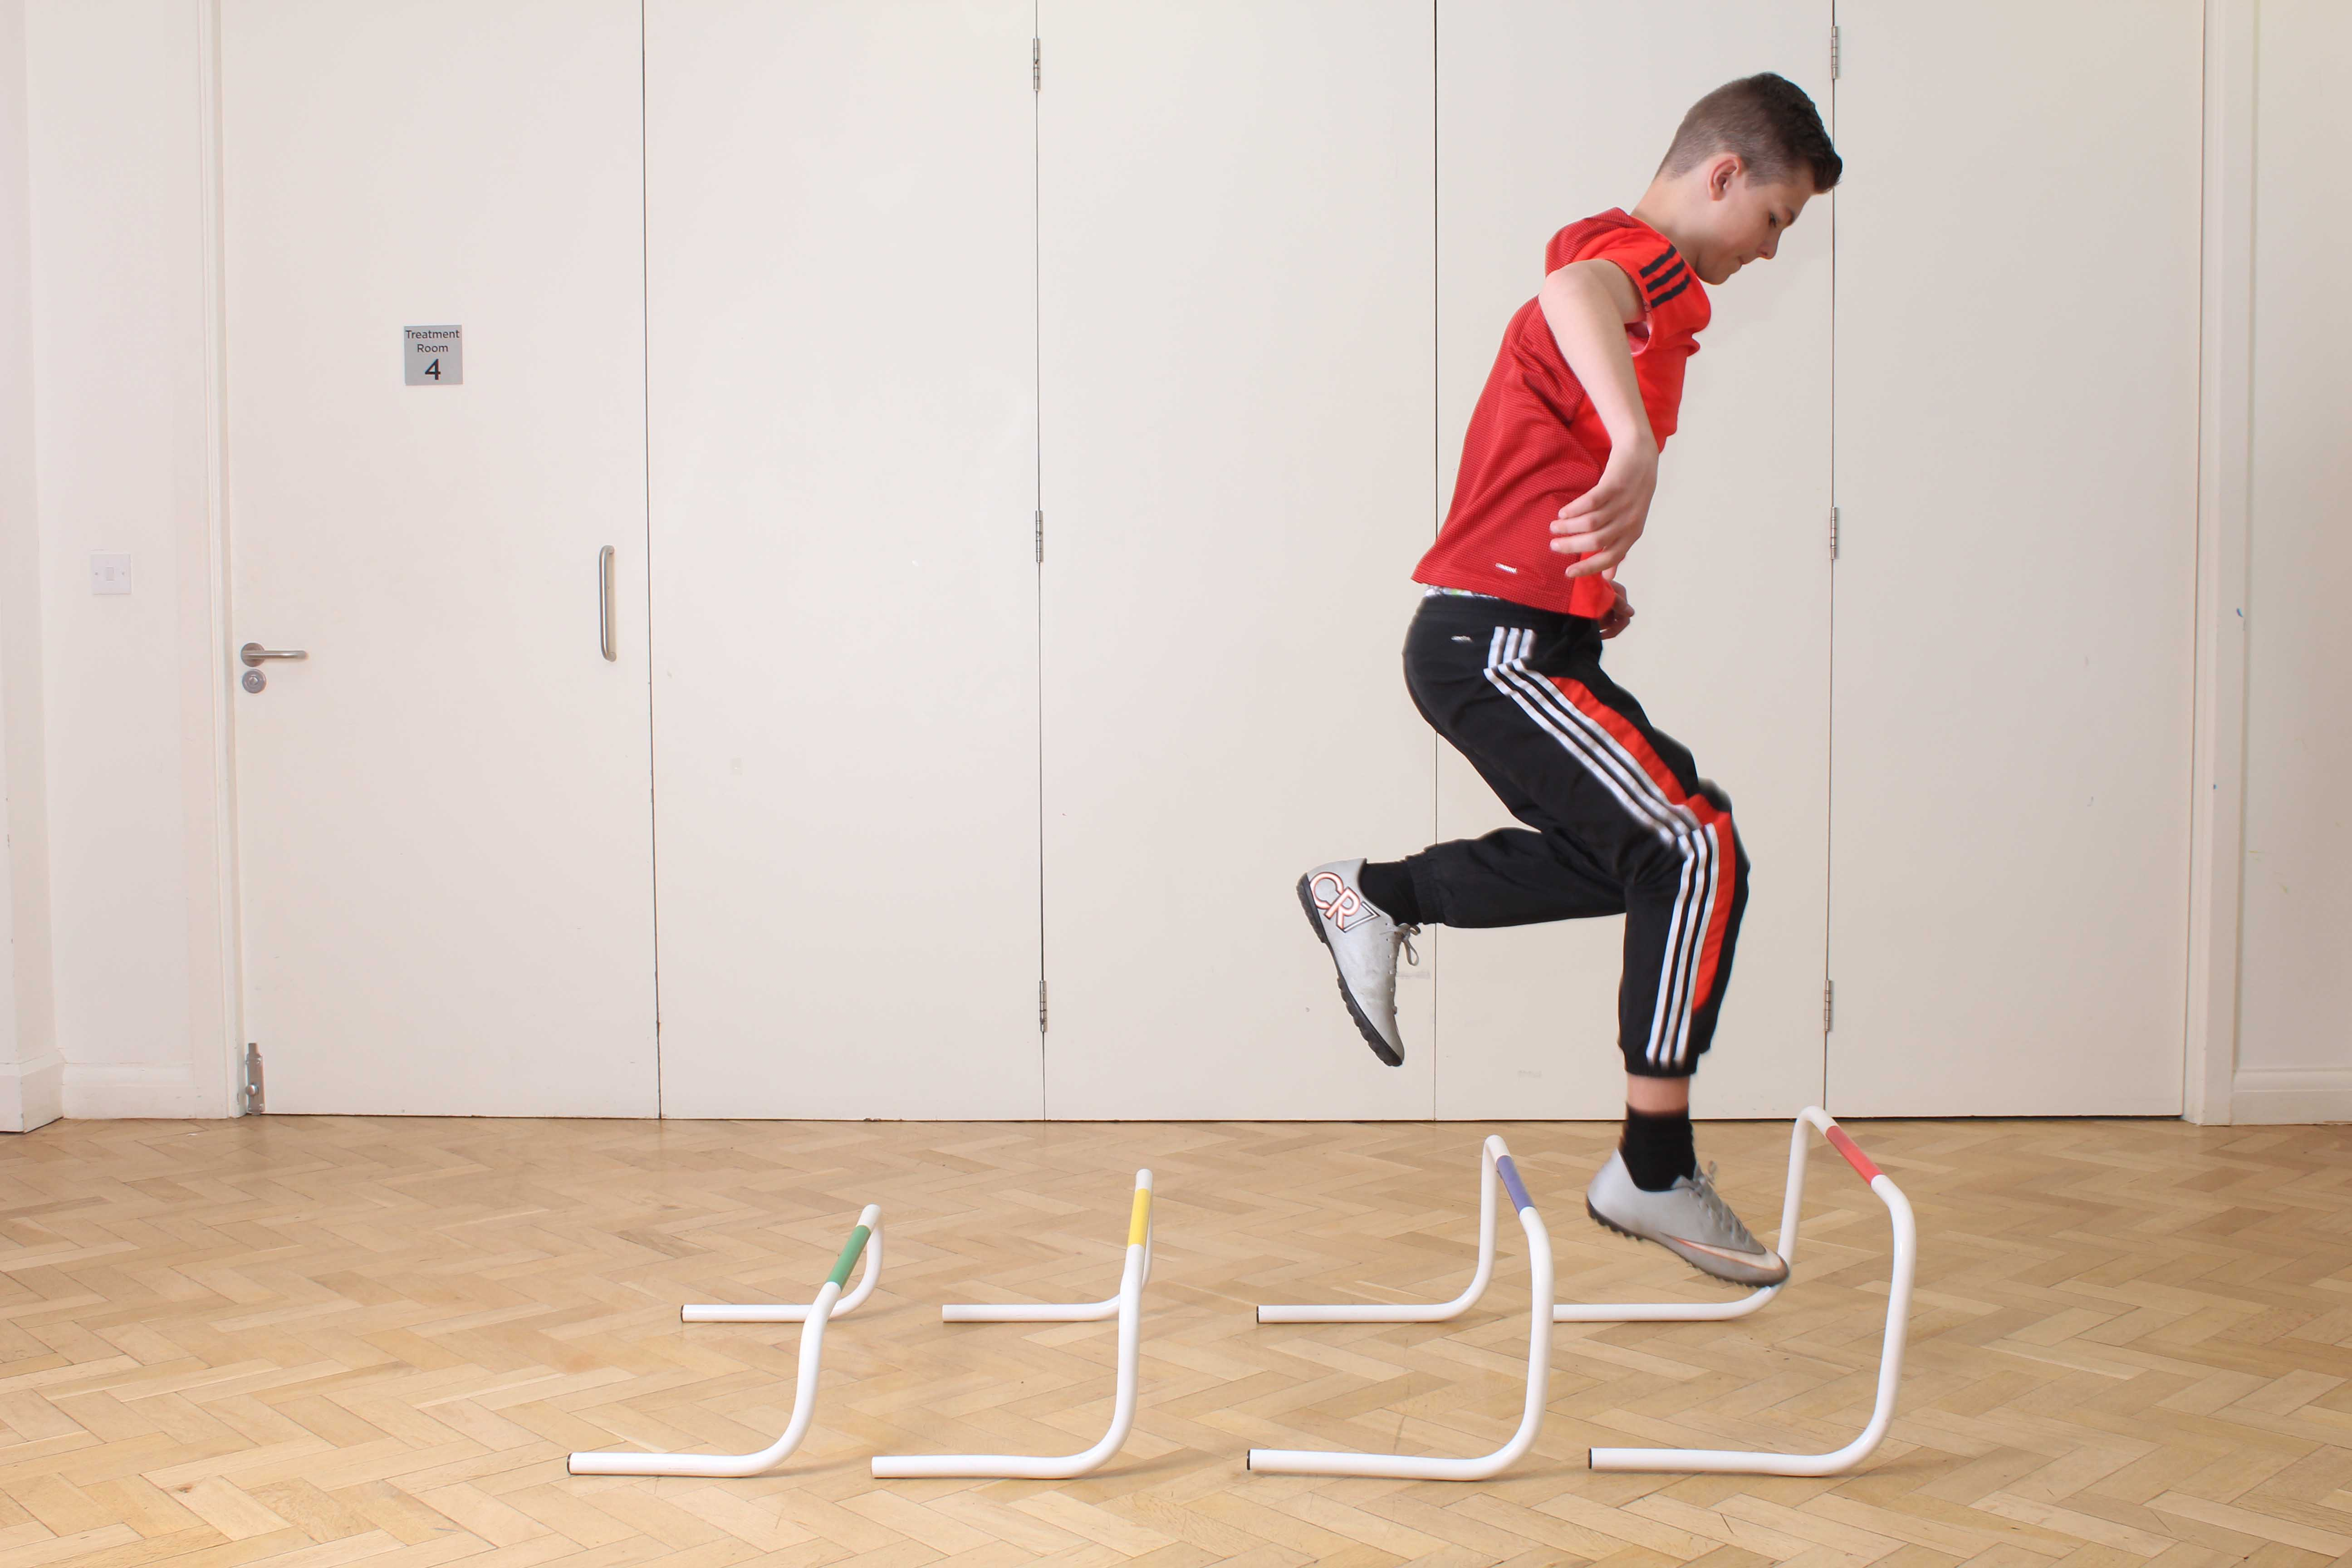 Mobility exercises using a Rolator frame supervised by a neurological physiotherapist